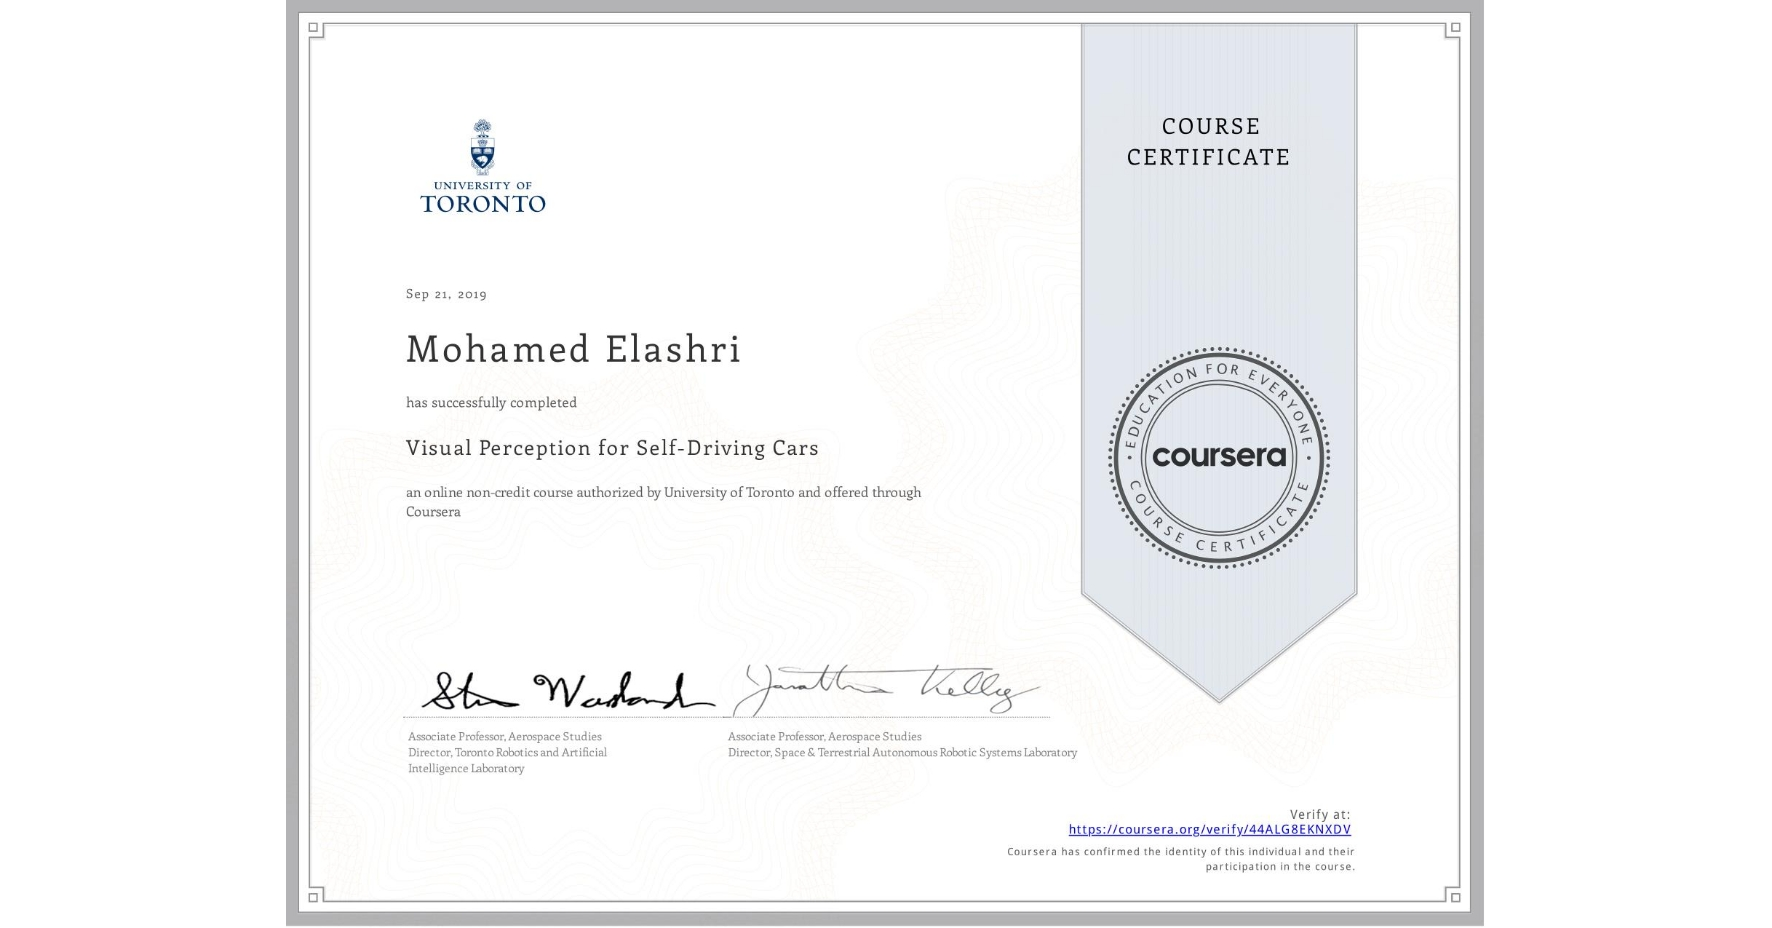 View certificate for Mohamed Elashri, Visual Perception for Self-Driving Cars, an online non-credit course authorized by University of Toronto and offered through Coursera